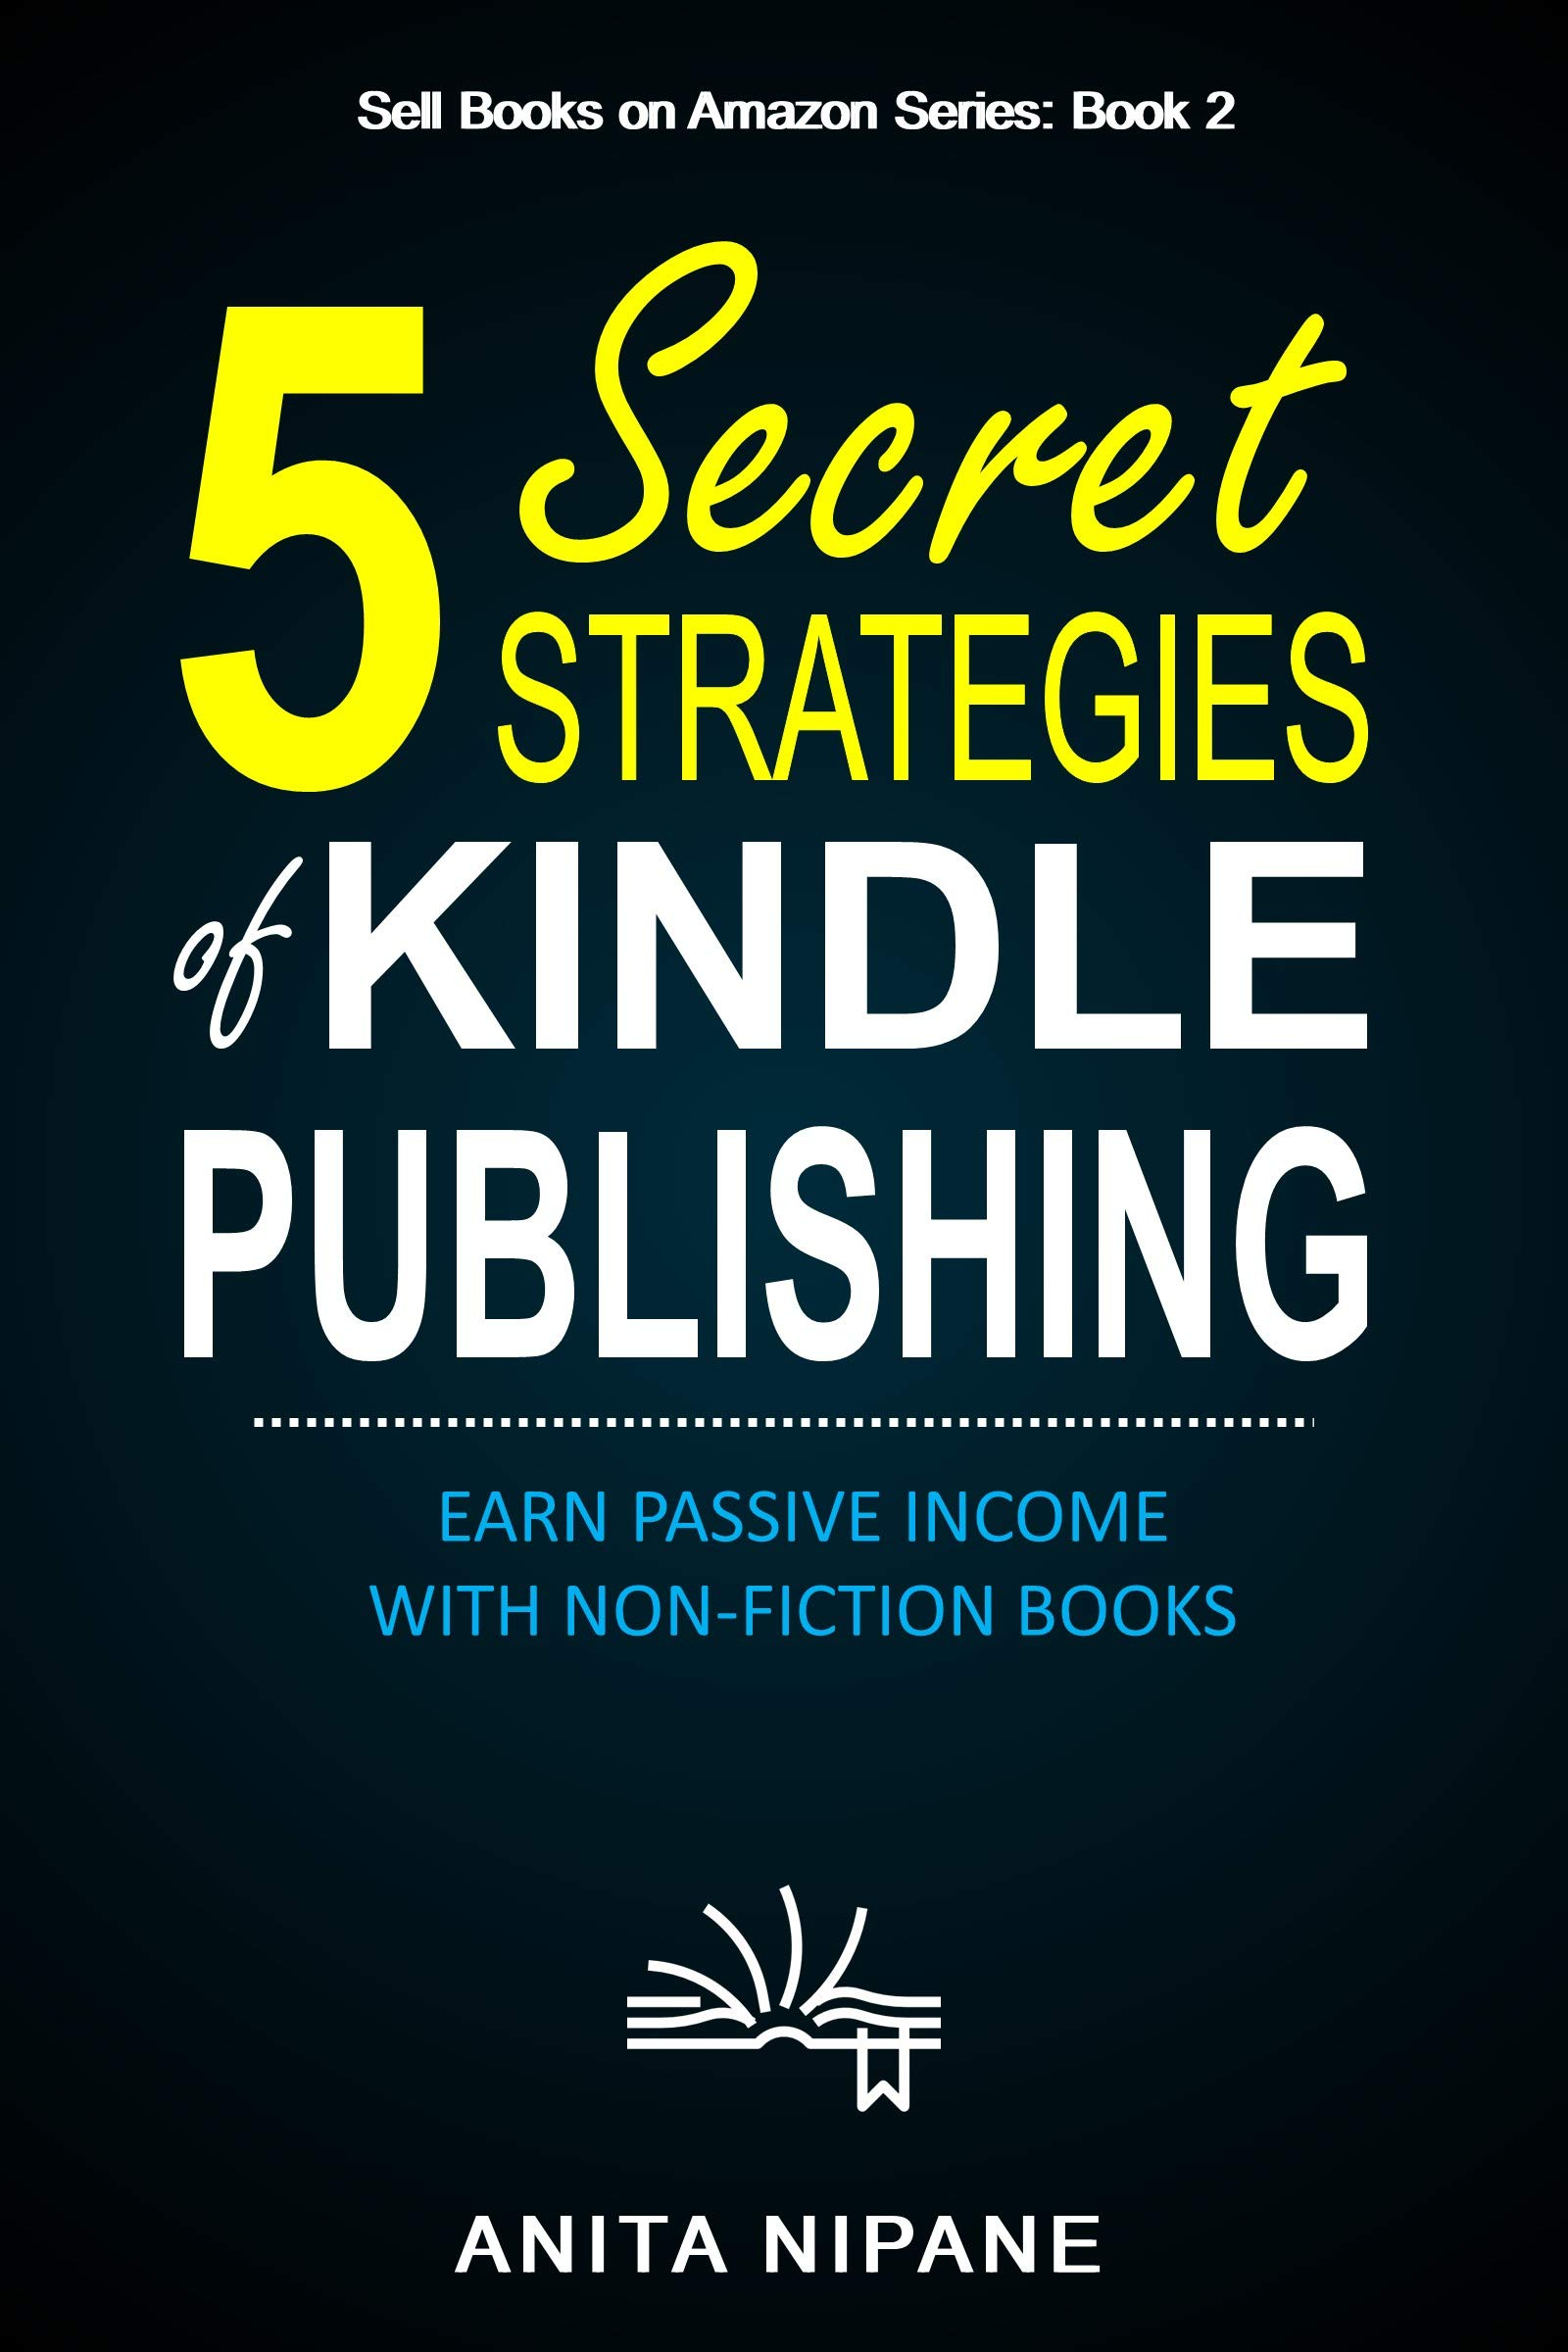 5 Secret Strategies of Kindle Publishing: Earn Passive Income with Non-fiction Books (Sell Books on Amazon Book 2)